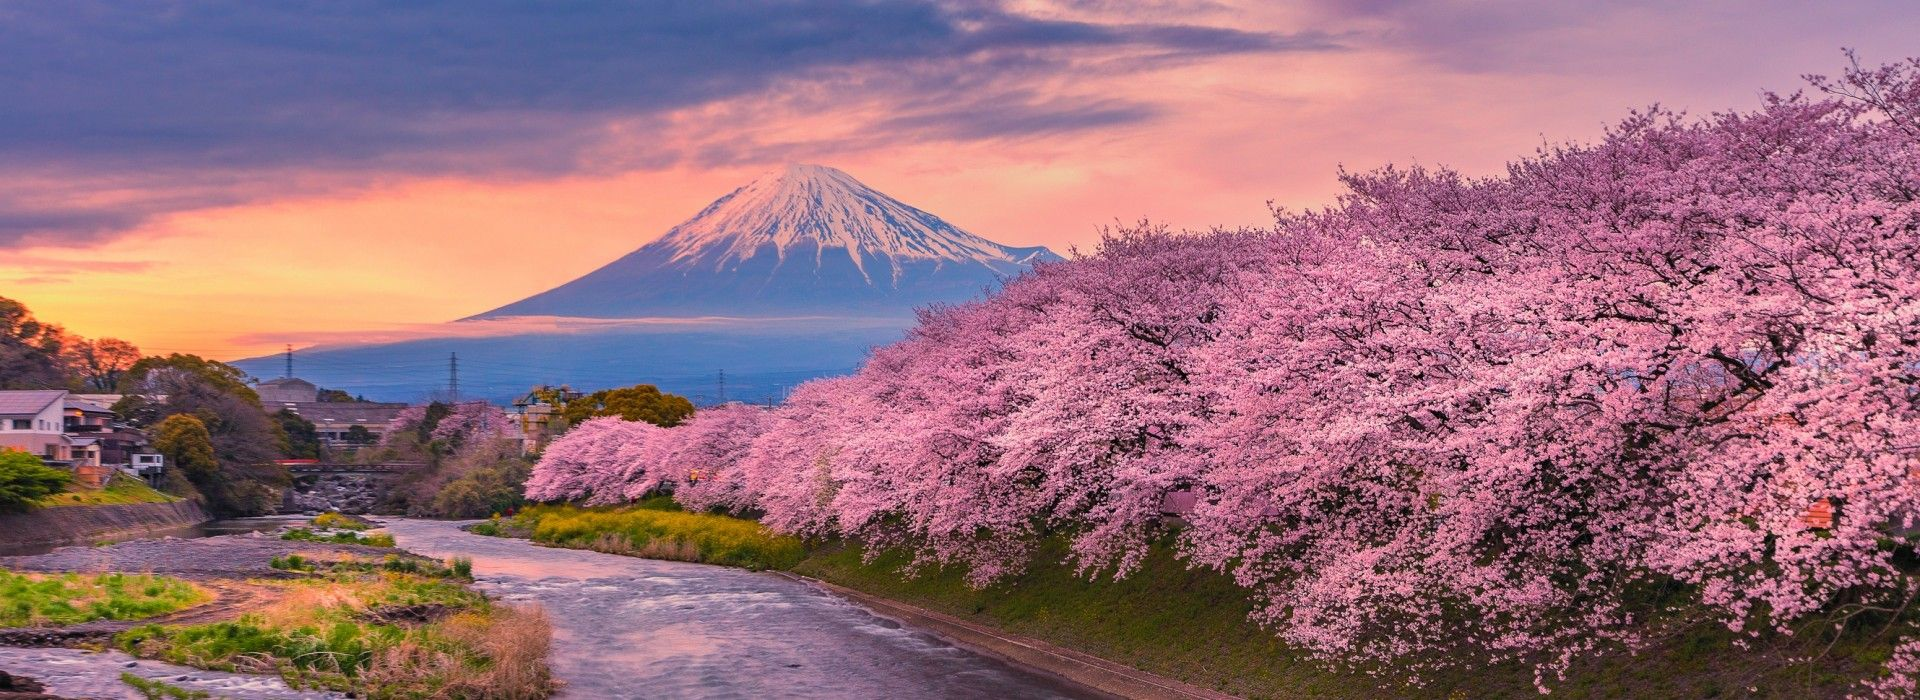 Wildlife, landscapes and nature Tours in Central Japan